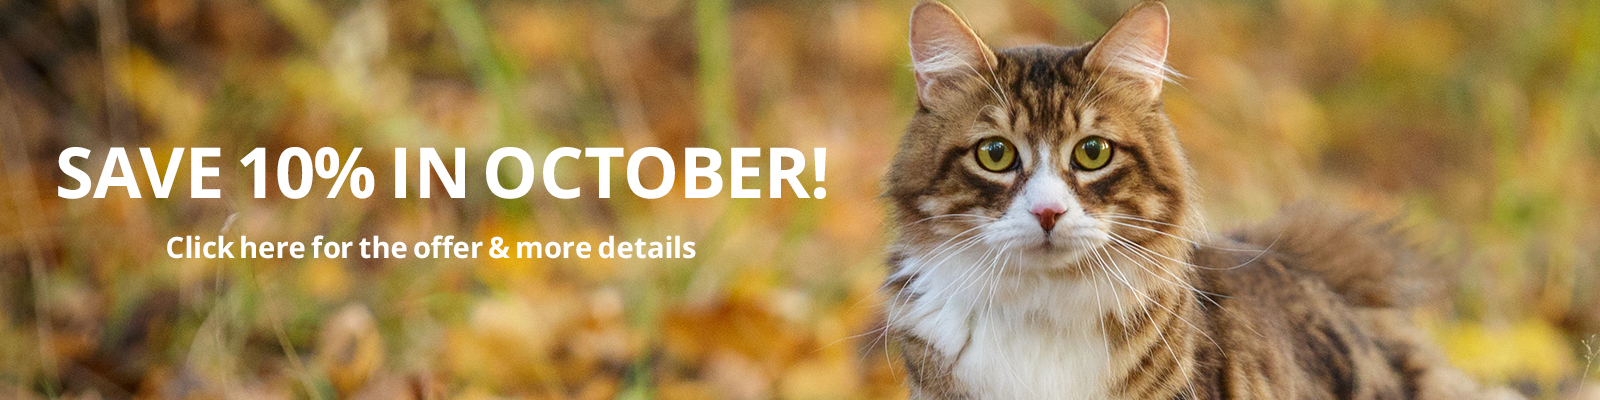 Save 10% in October!